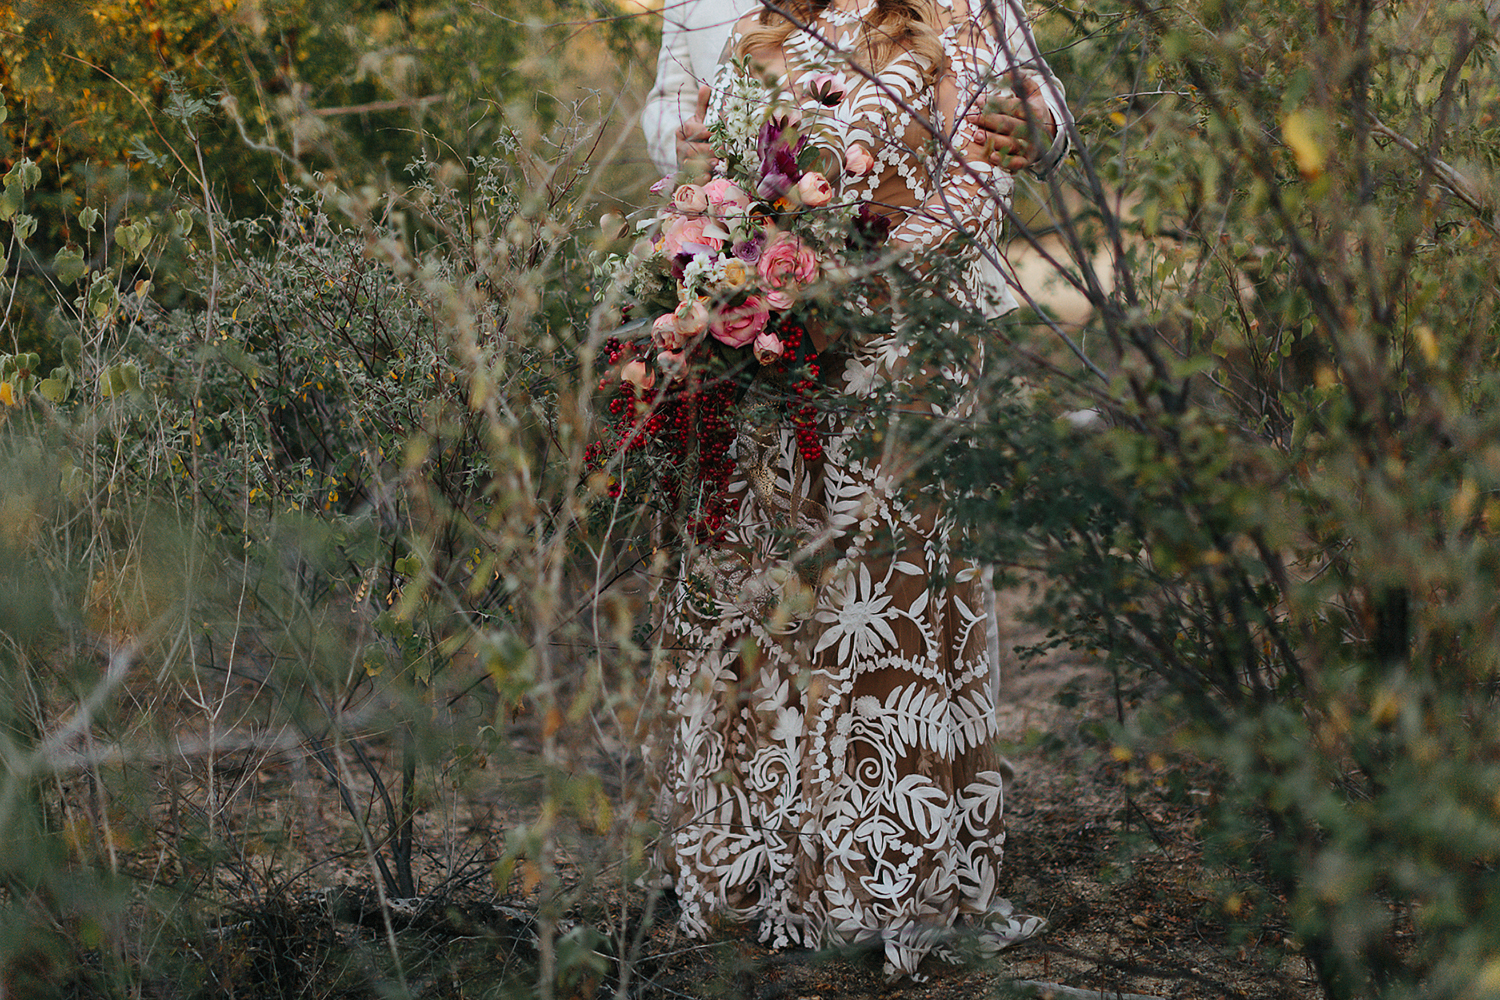 cabo-san-lucas-wedding-travelling-destination-wedding-photographer-toronto-wedding-photographers-3b-photography-hipster-trendy-documentary-style-mexico-wedding-bride-and-groom-portraits-alternative-details-bouquet.jpg